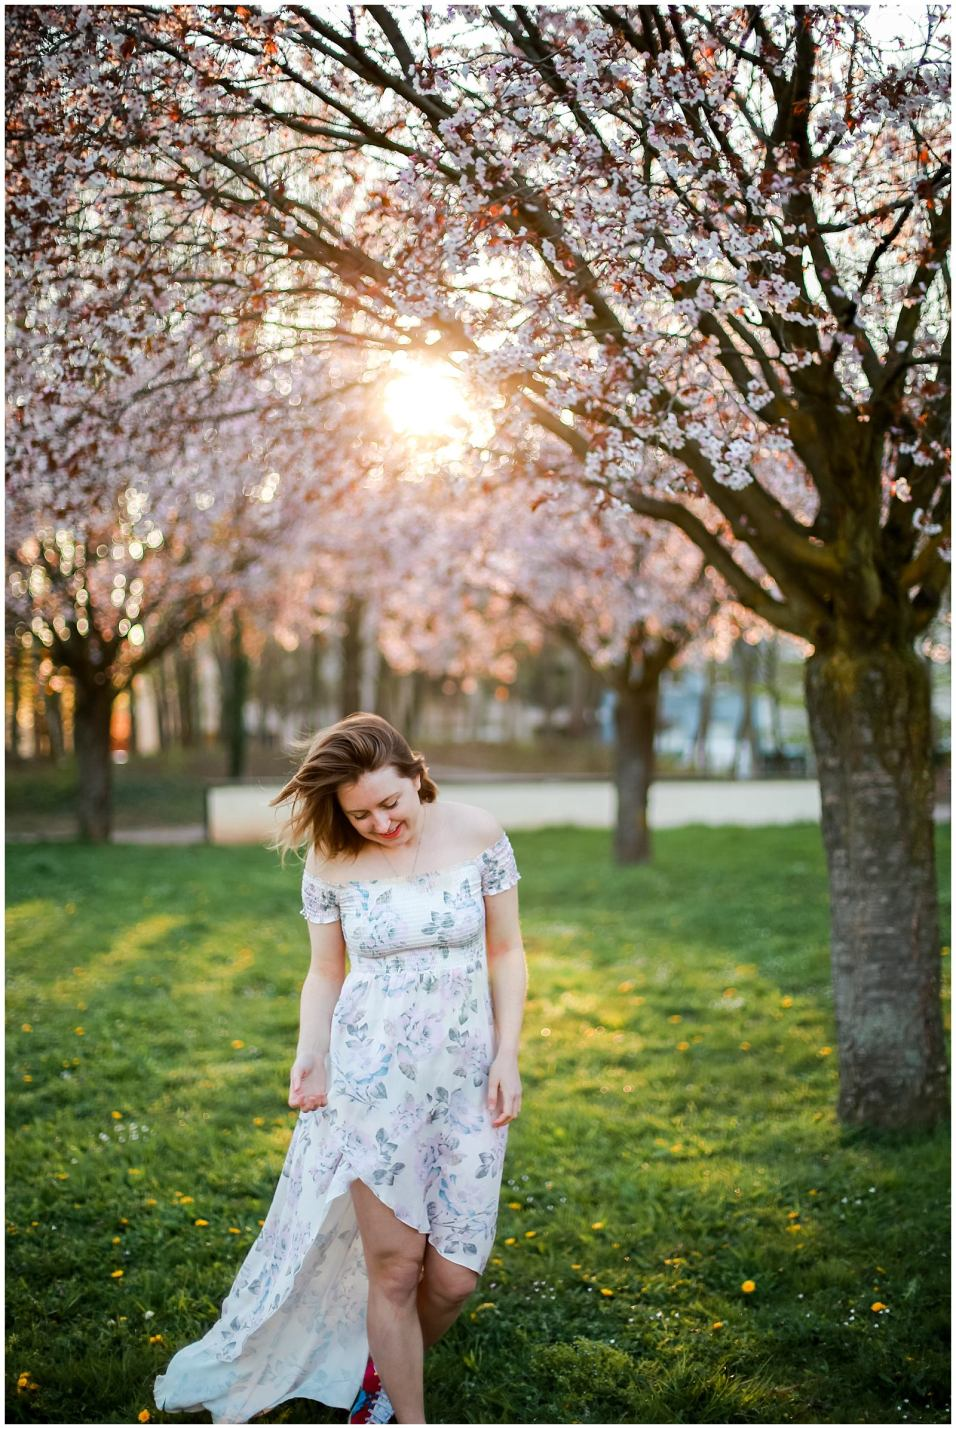 Helena-Woods-Spring-Blossoms-Clean-Heart-Simple-Joys-Blog_0559